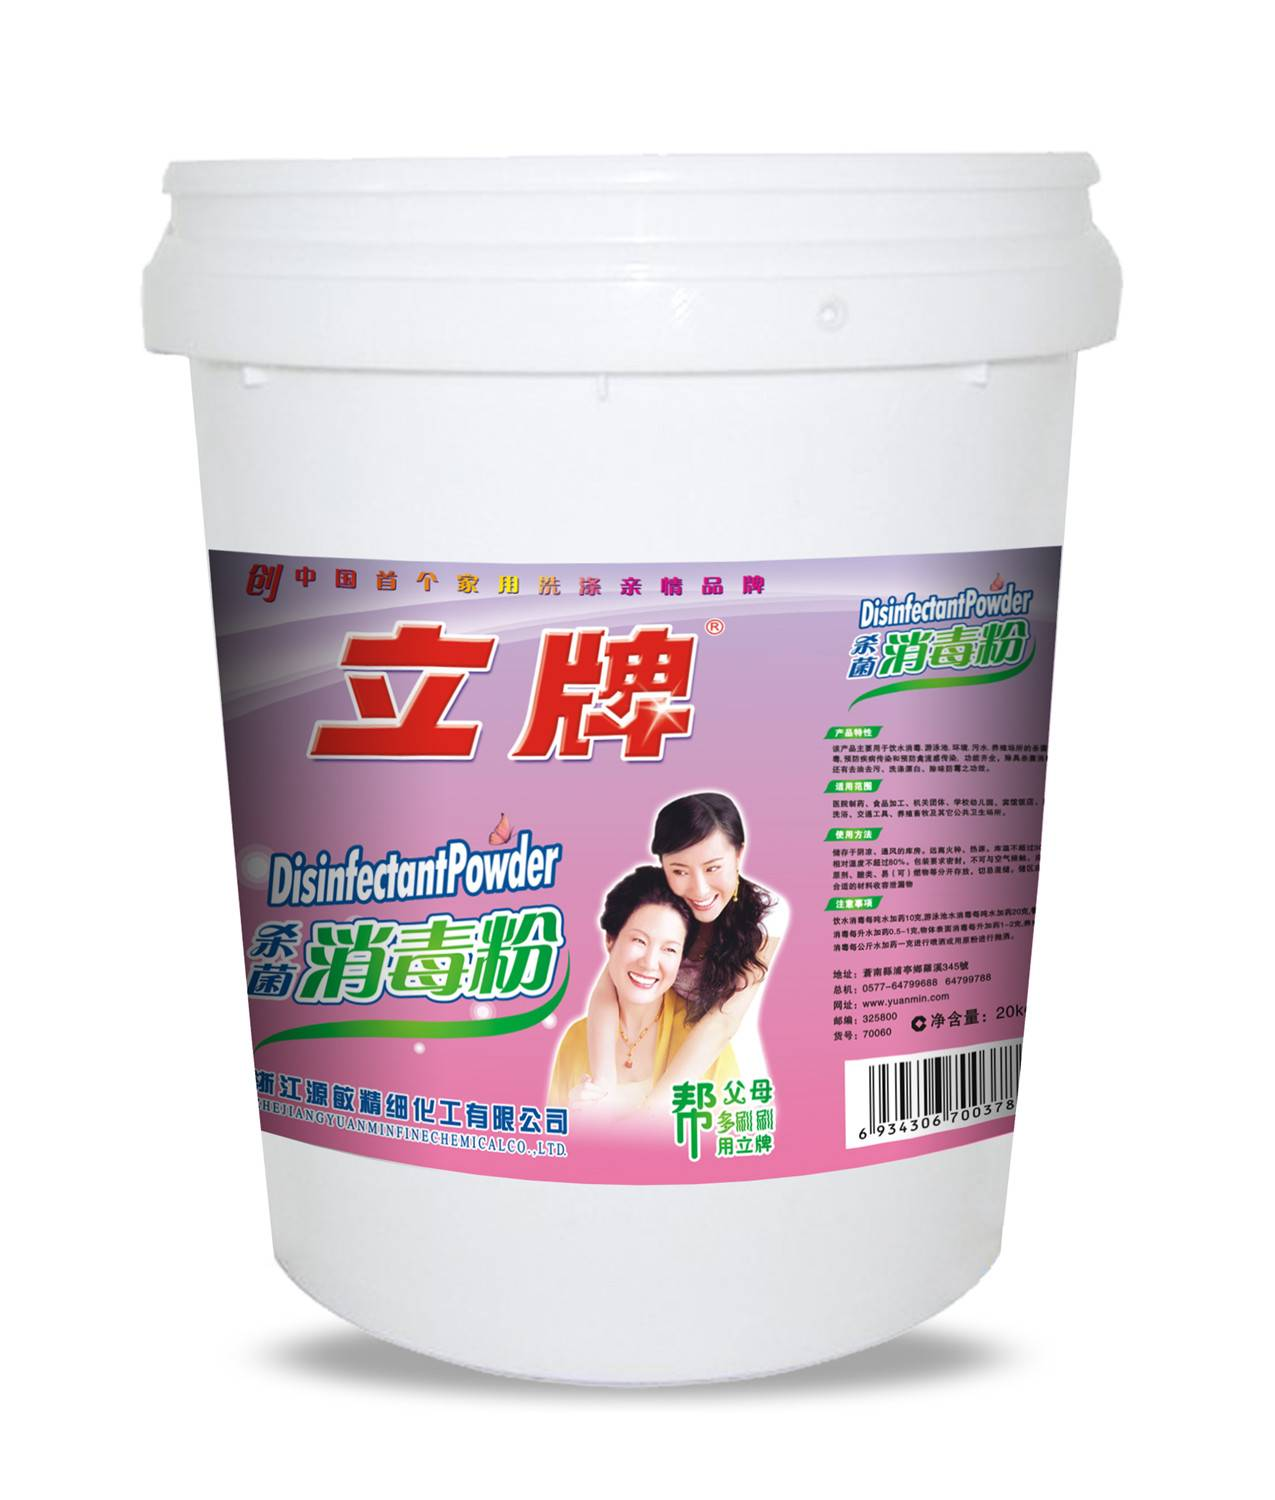 Lipai Disinfectant Powder 20KG, Daily chemicals, Accept OEM Order